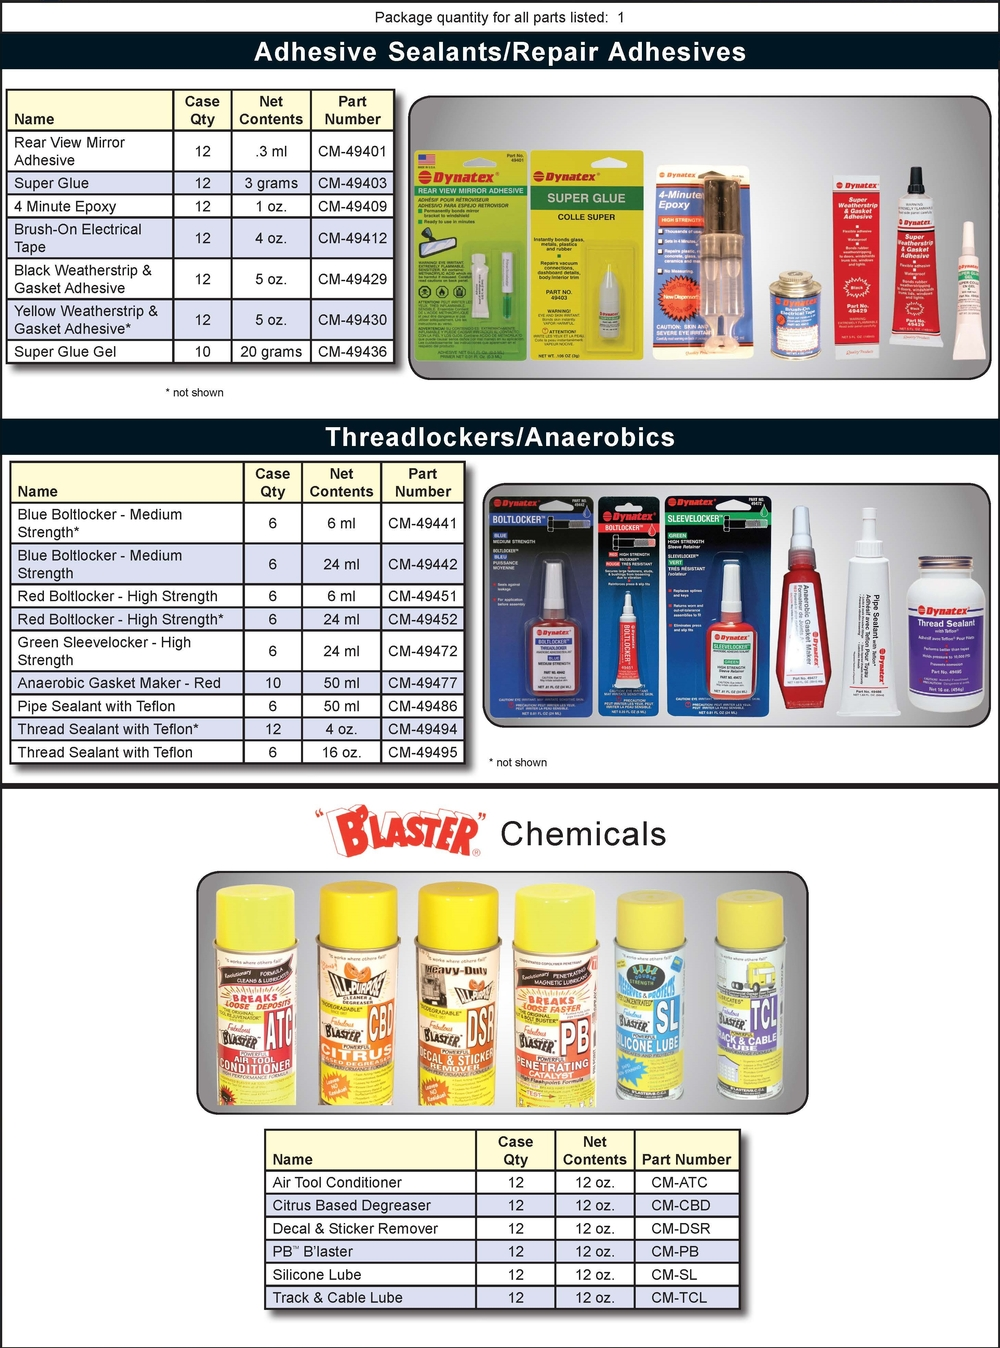 Spray Chemicals and Adhesives